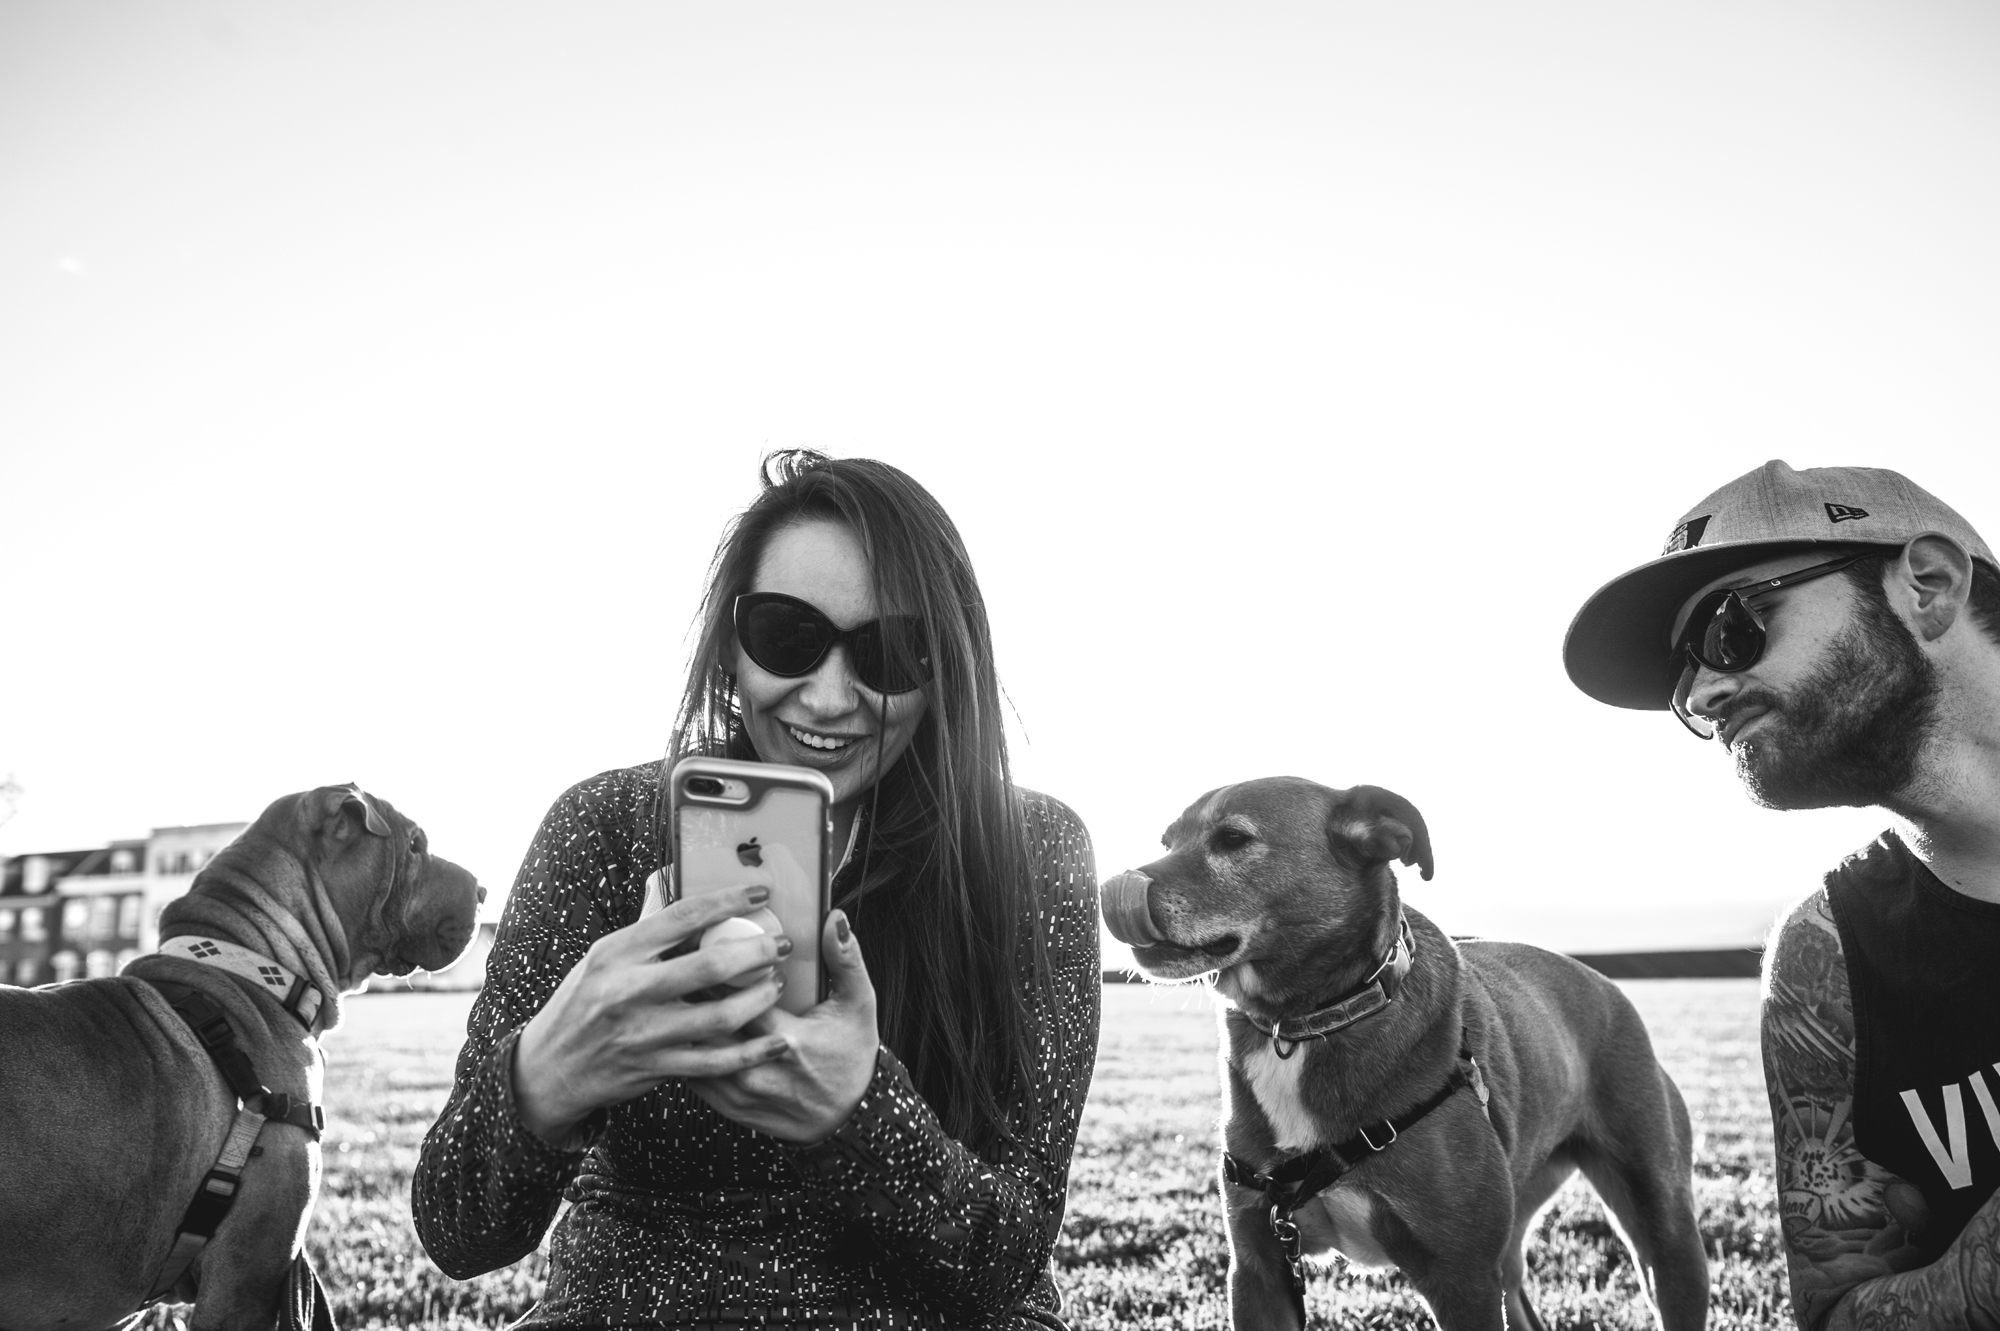 Woman looking at her phone as her dog looks on, licking his lips, and her husband leans over to look as well, black and white, Stapleton, Colorado